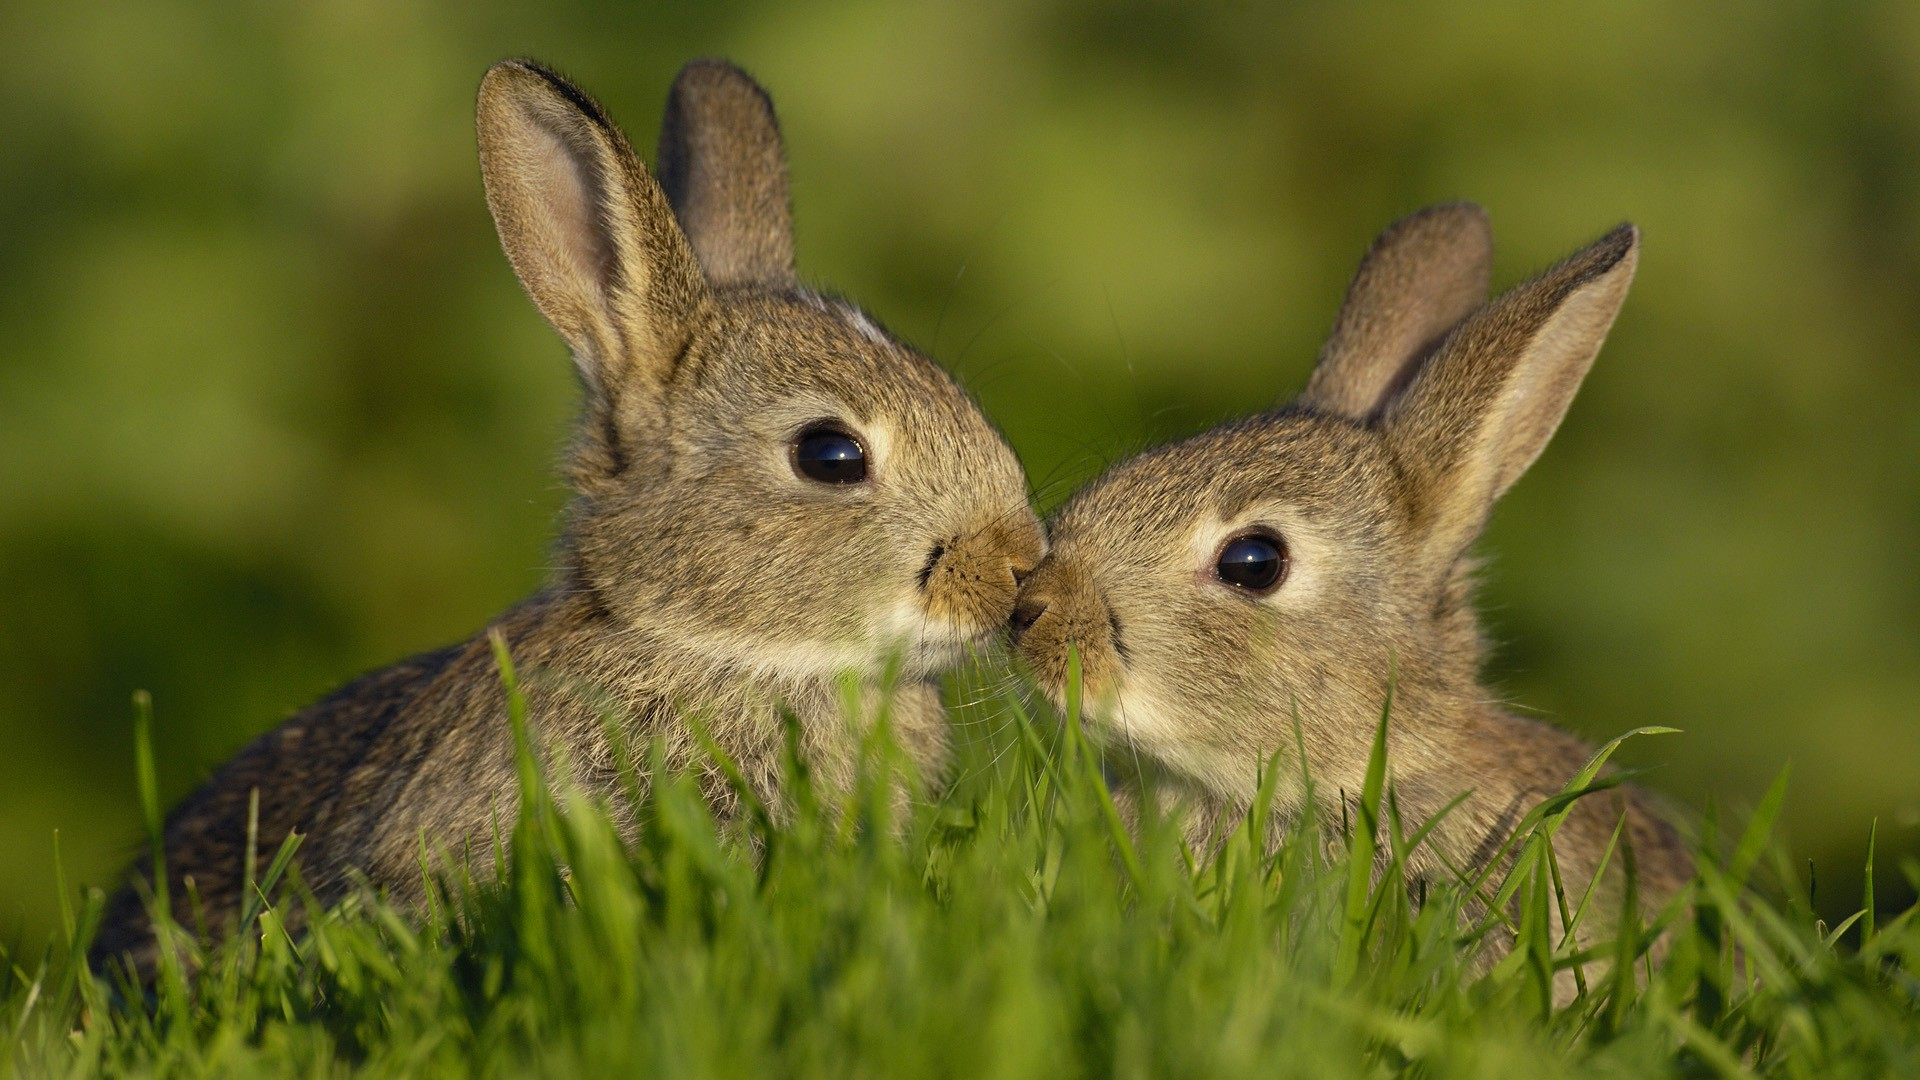 Brothers hares in the grass